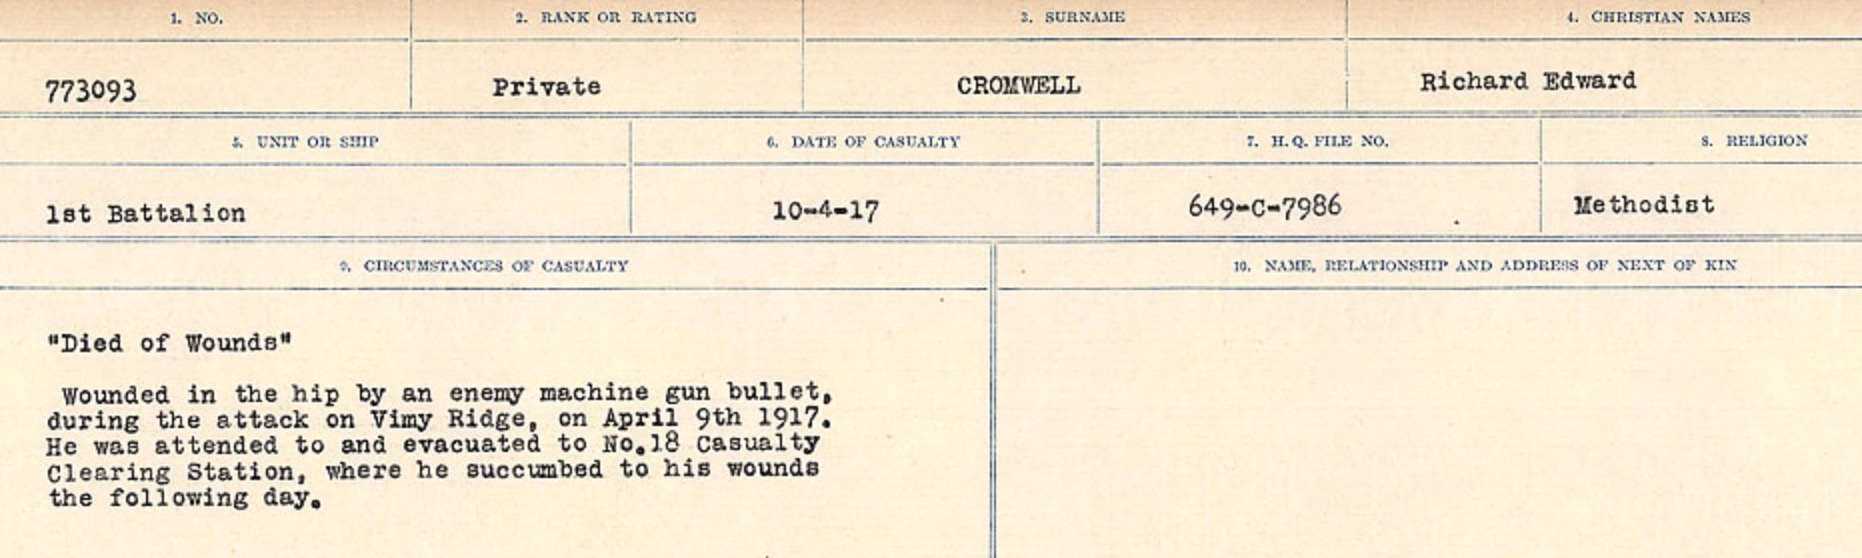 Circumstances of death registers– Source: Library and Archives Canada. CIRCUMSTANCES OF DEATH REGISTERS, FIRST WORLD WAR Surnames: CRABB TO CROSSLAND Microform Sequence 24; Volume Number 31829_B016733. Reference RG150, 1992-93/314, 168. Page 653 of 788.